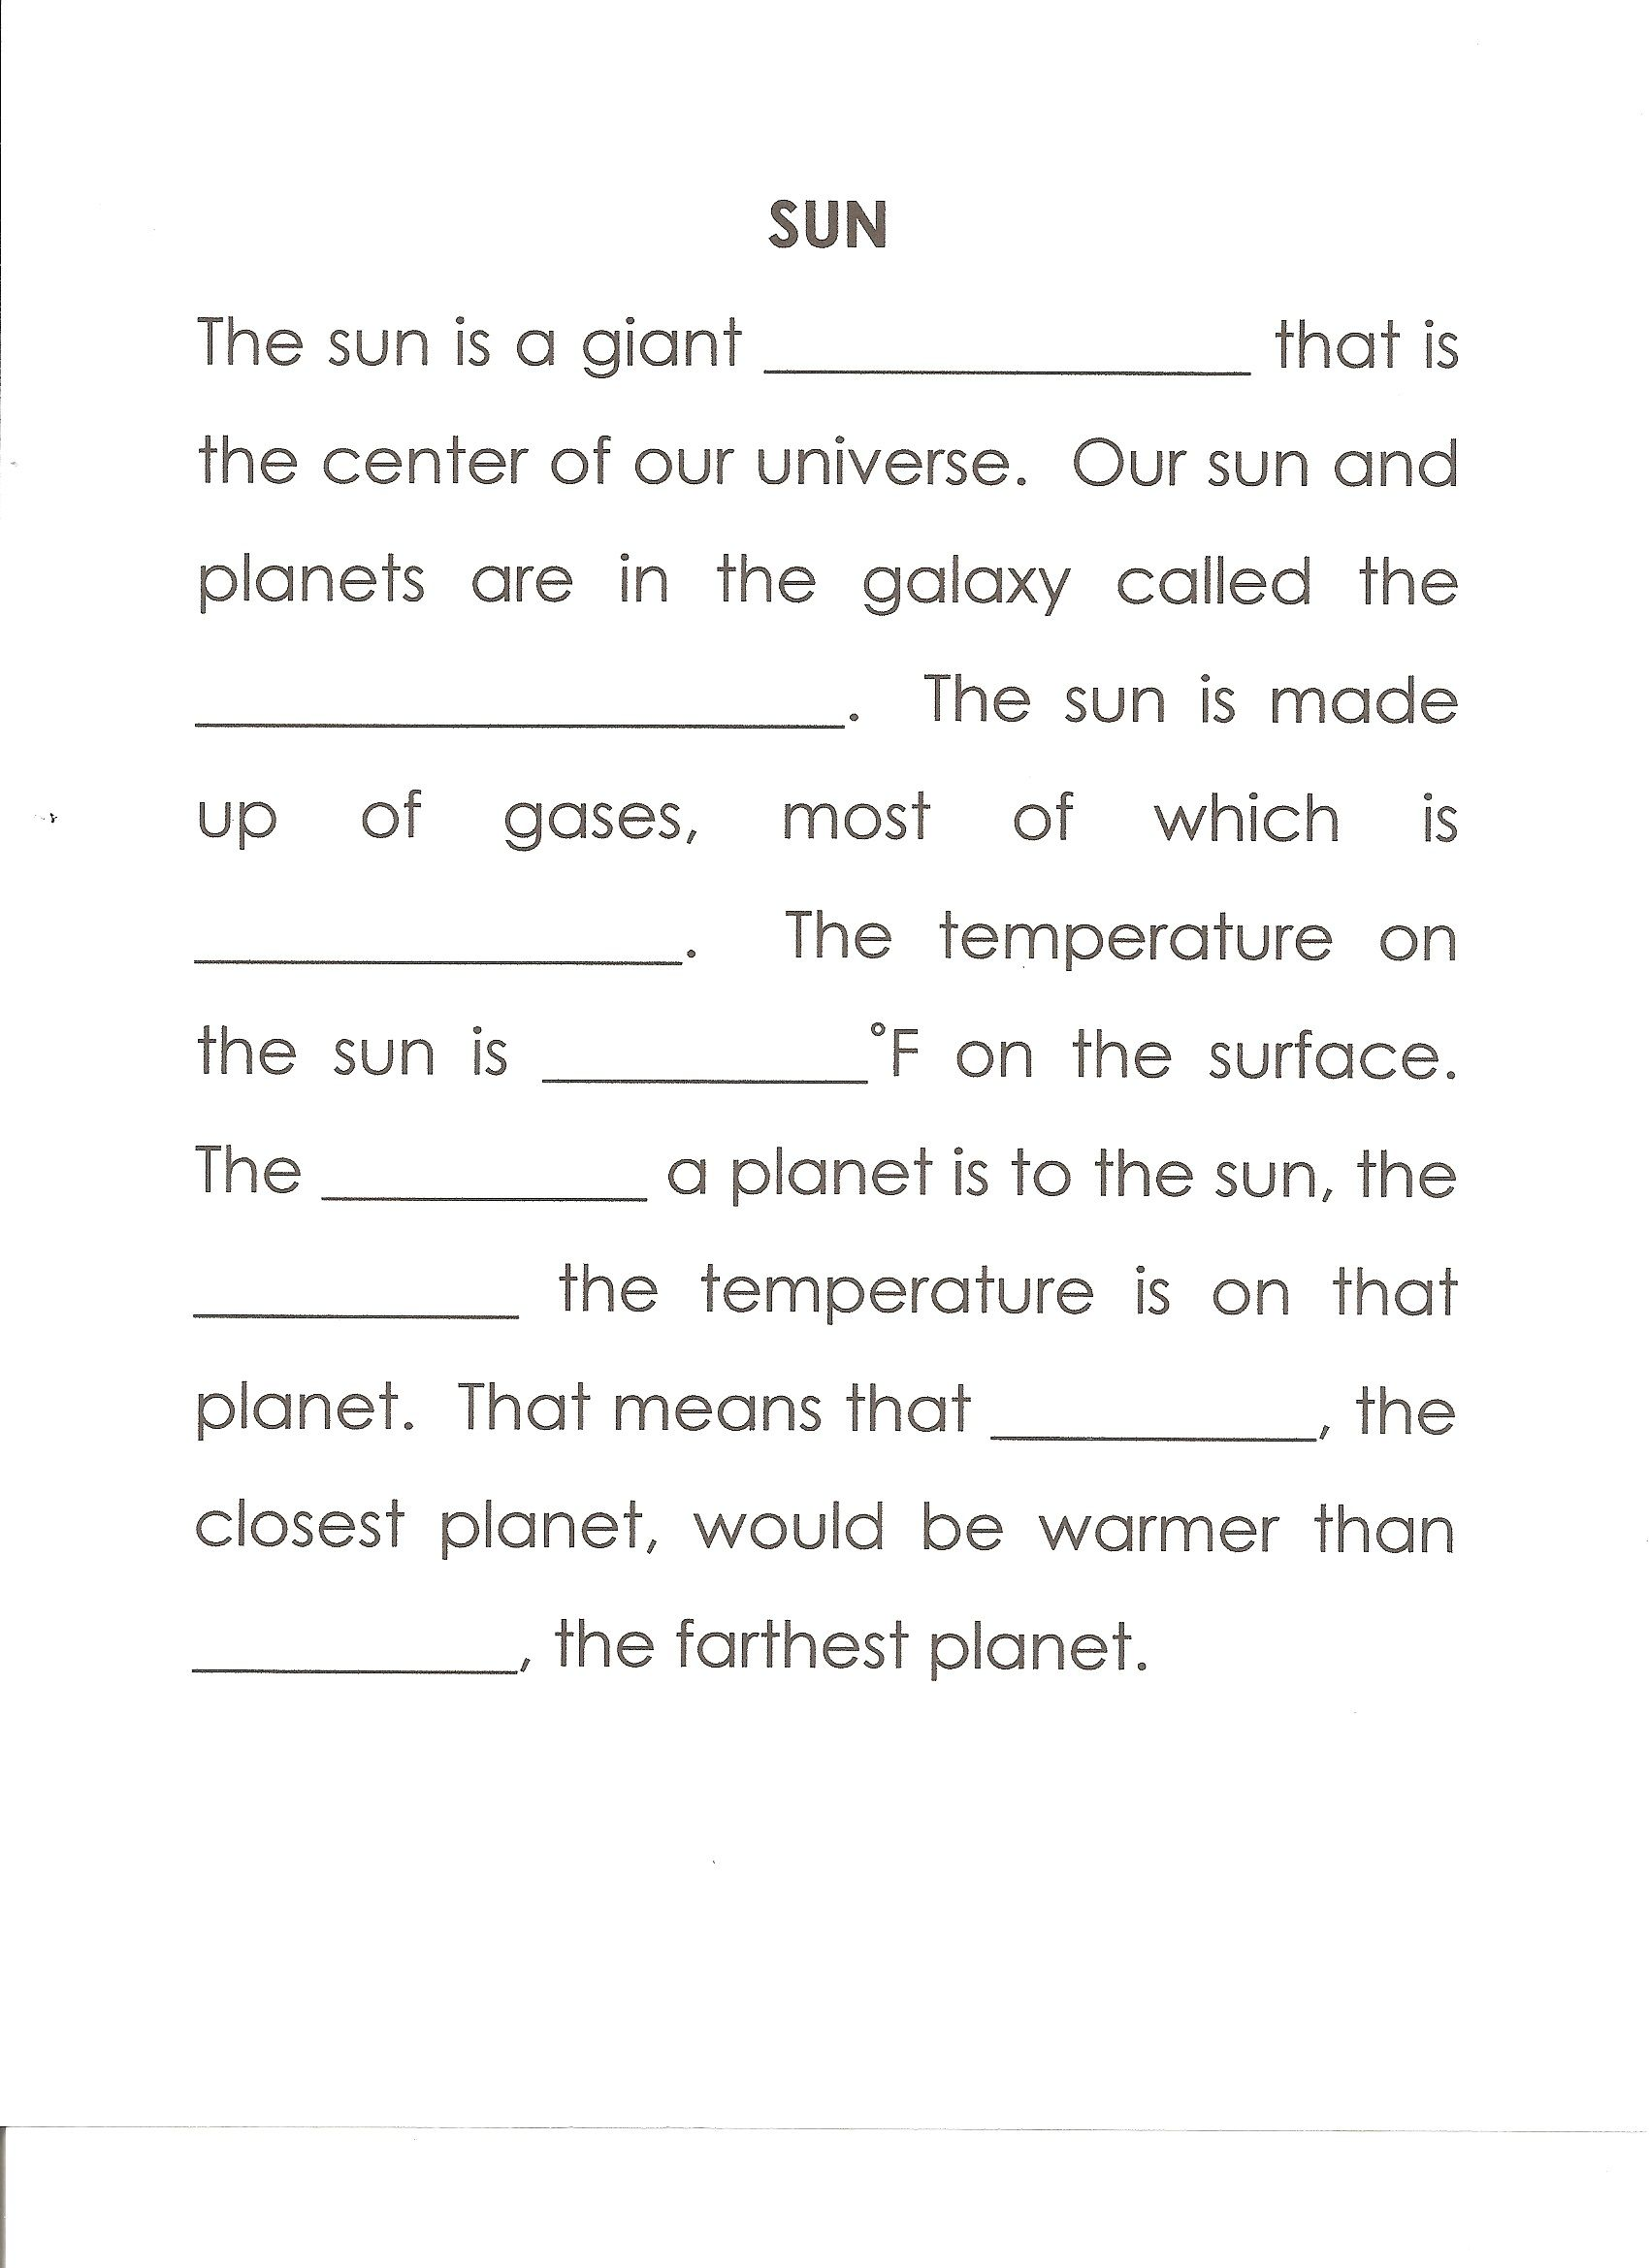 worksheet Sun Worksheets sun worksheet answers star milky way hydrogen 10000 closer warmer